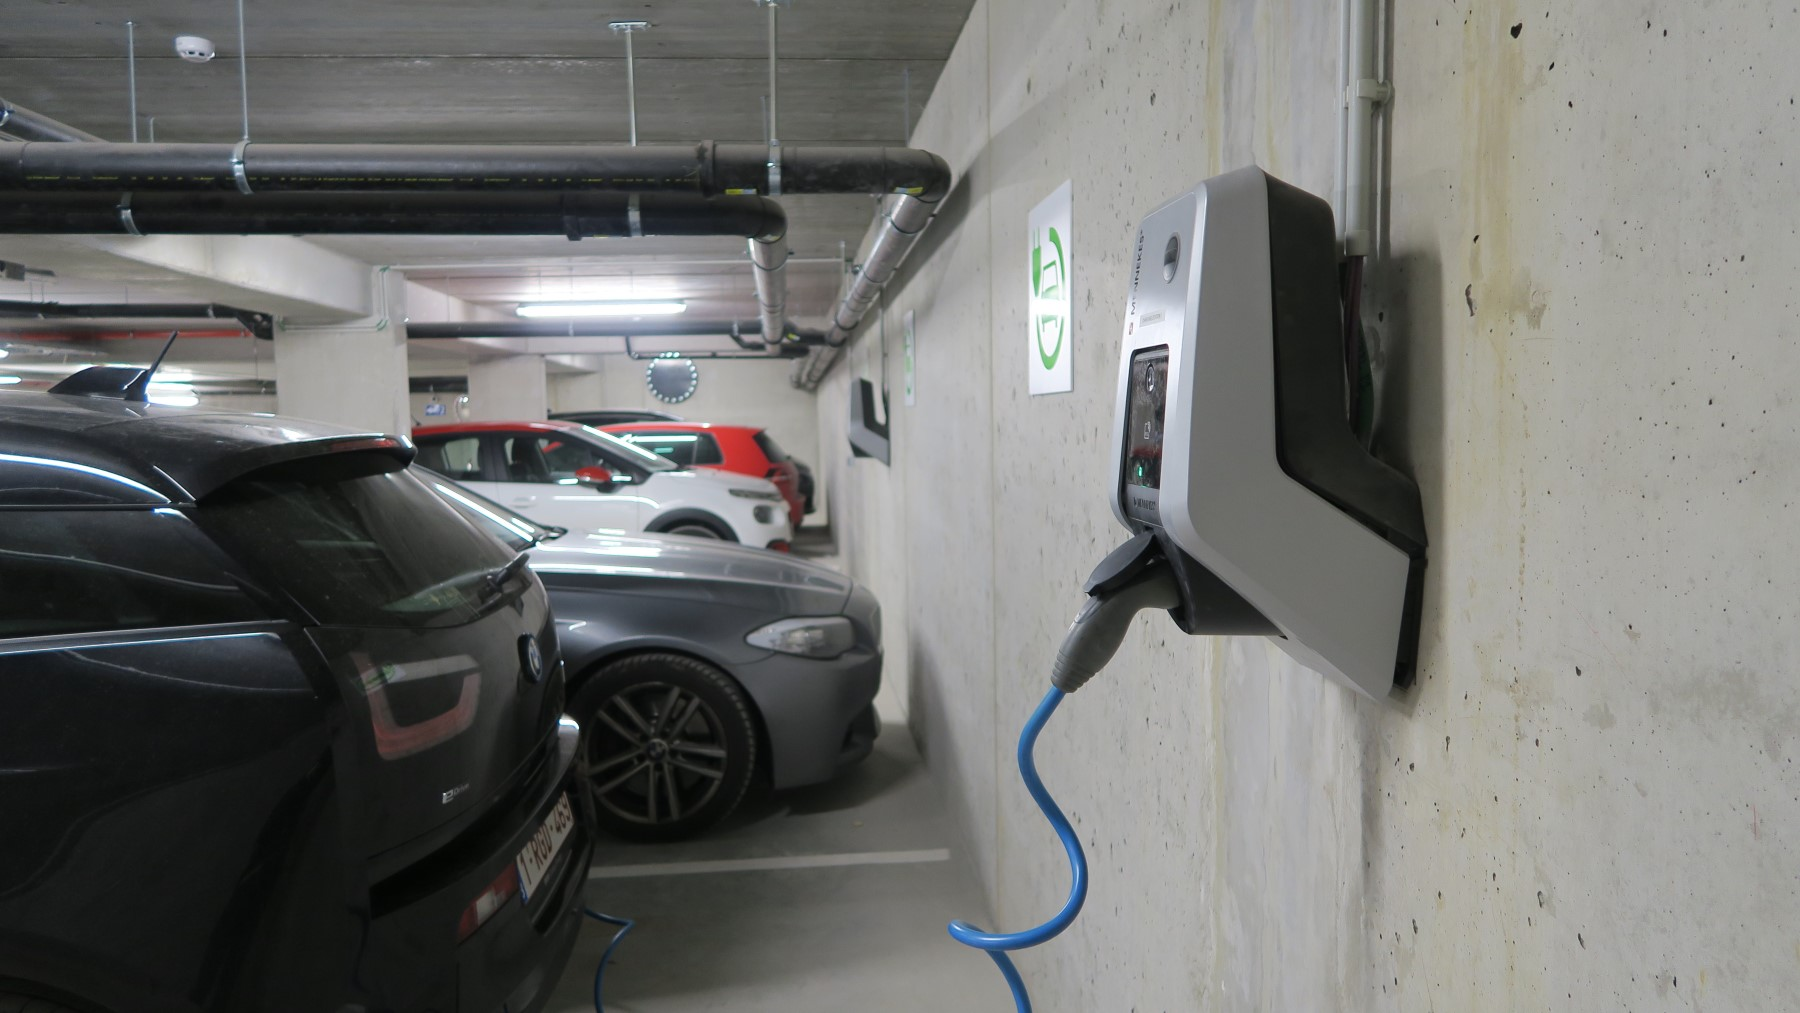 Electric Car Station | Electric Car Charging | Electric Car Charger | Car Charge Point | WiFi Enabled Electric Vehicle (EV) Charger | Electric Vehicle (EV) Charger | Solar Electric Car Station | Solar Electric Car Charging | Solar Electric Car Charger | Solar Car Charge Point | Solar WiFi Enabled Electric Vehicle (EV) Charger | Solar Electric Vehicle (EV) Charger.